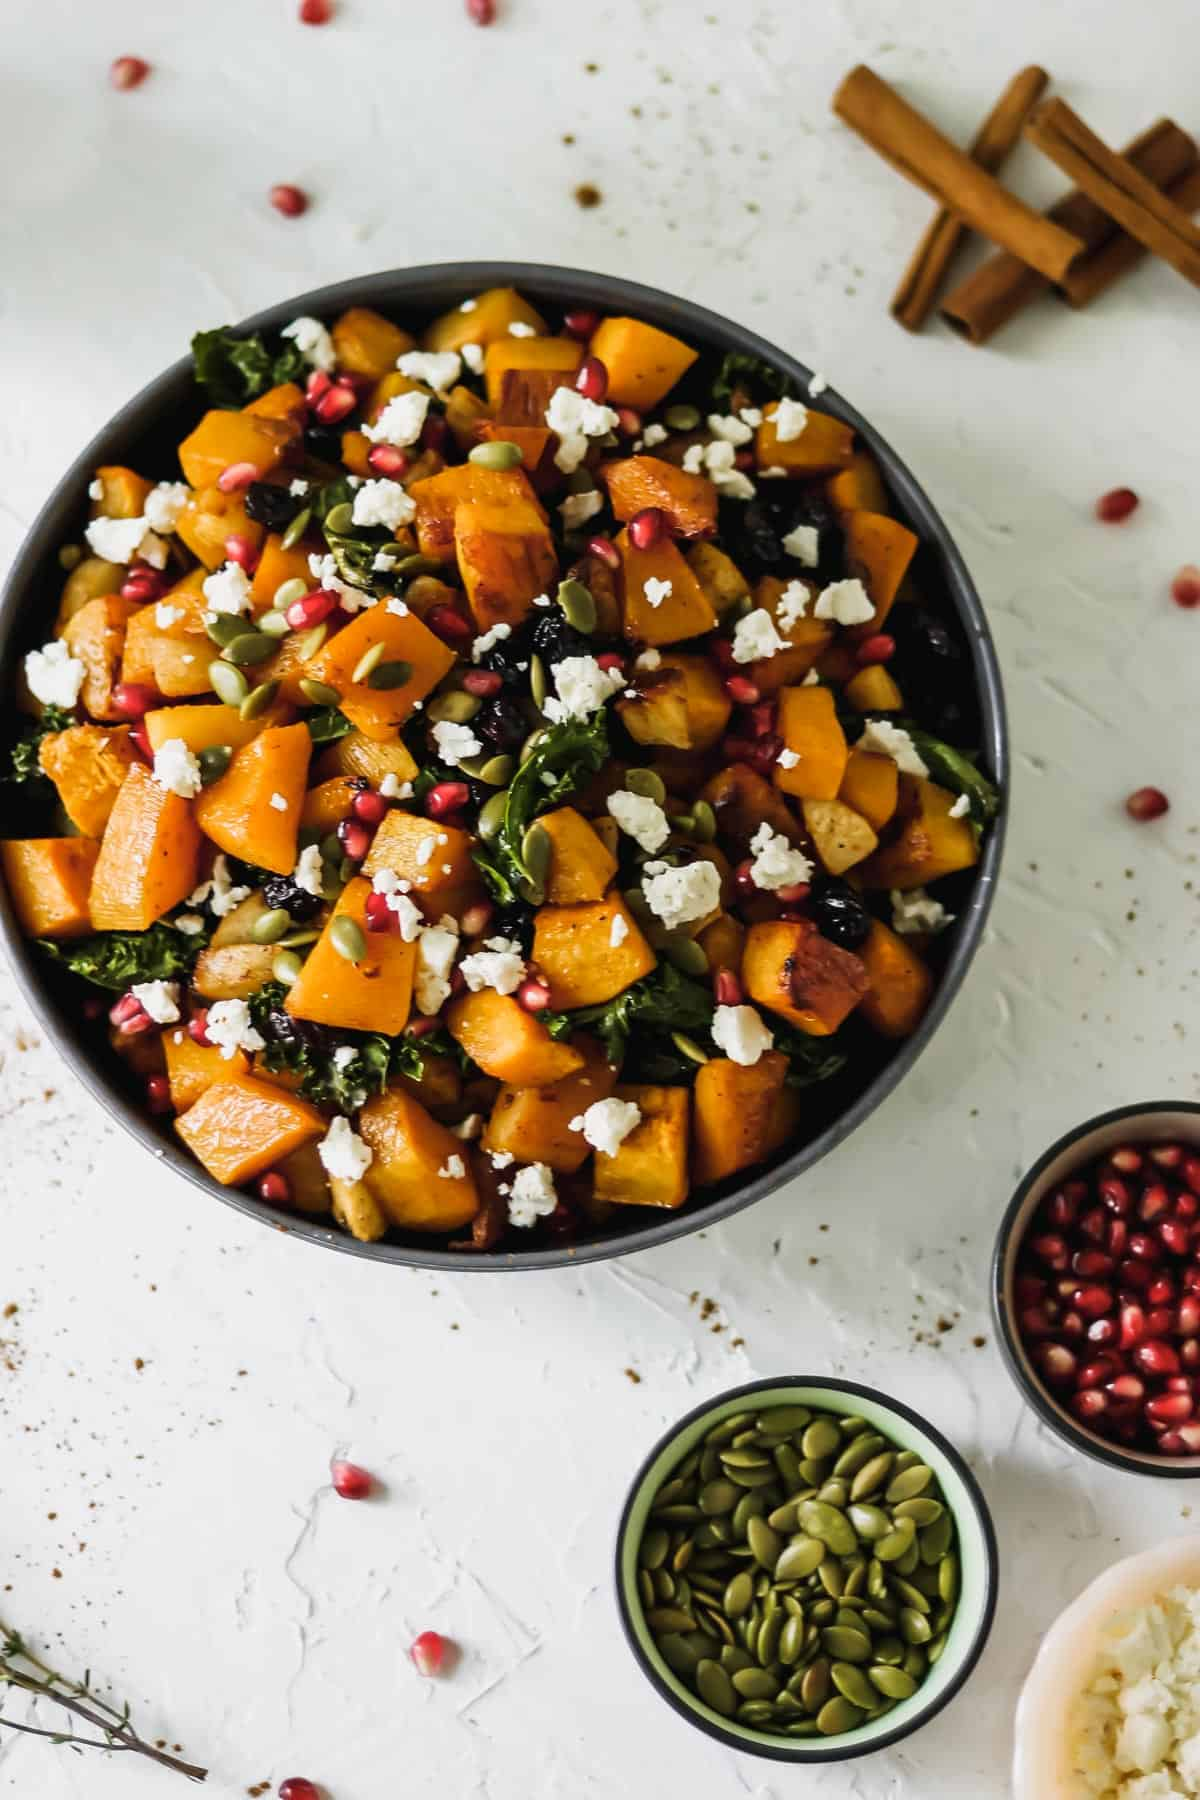 Roasted butternut squash with apples and kale in a black bowl with pumpkin seeds, pomegranate seeds, feta, thyme, and cinnamon sticks around it.